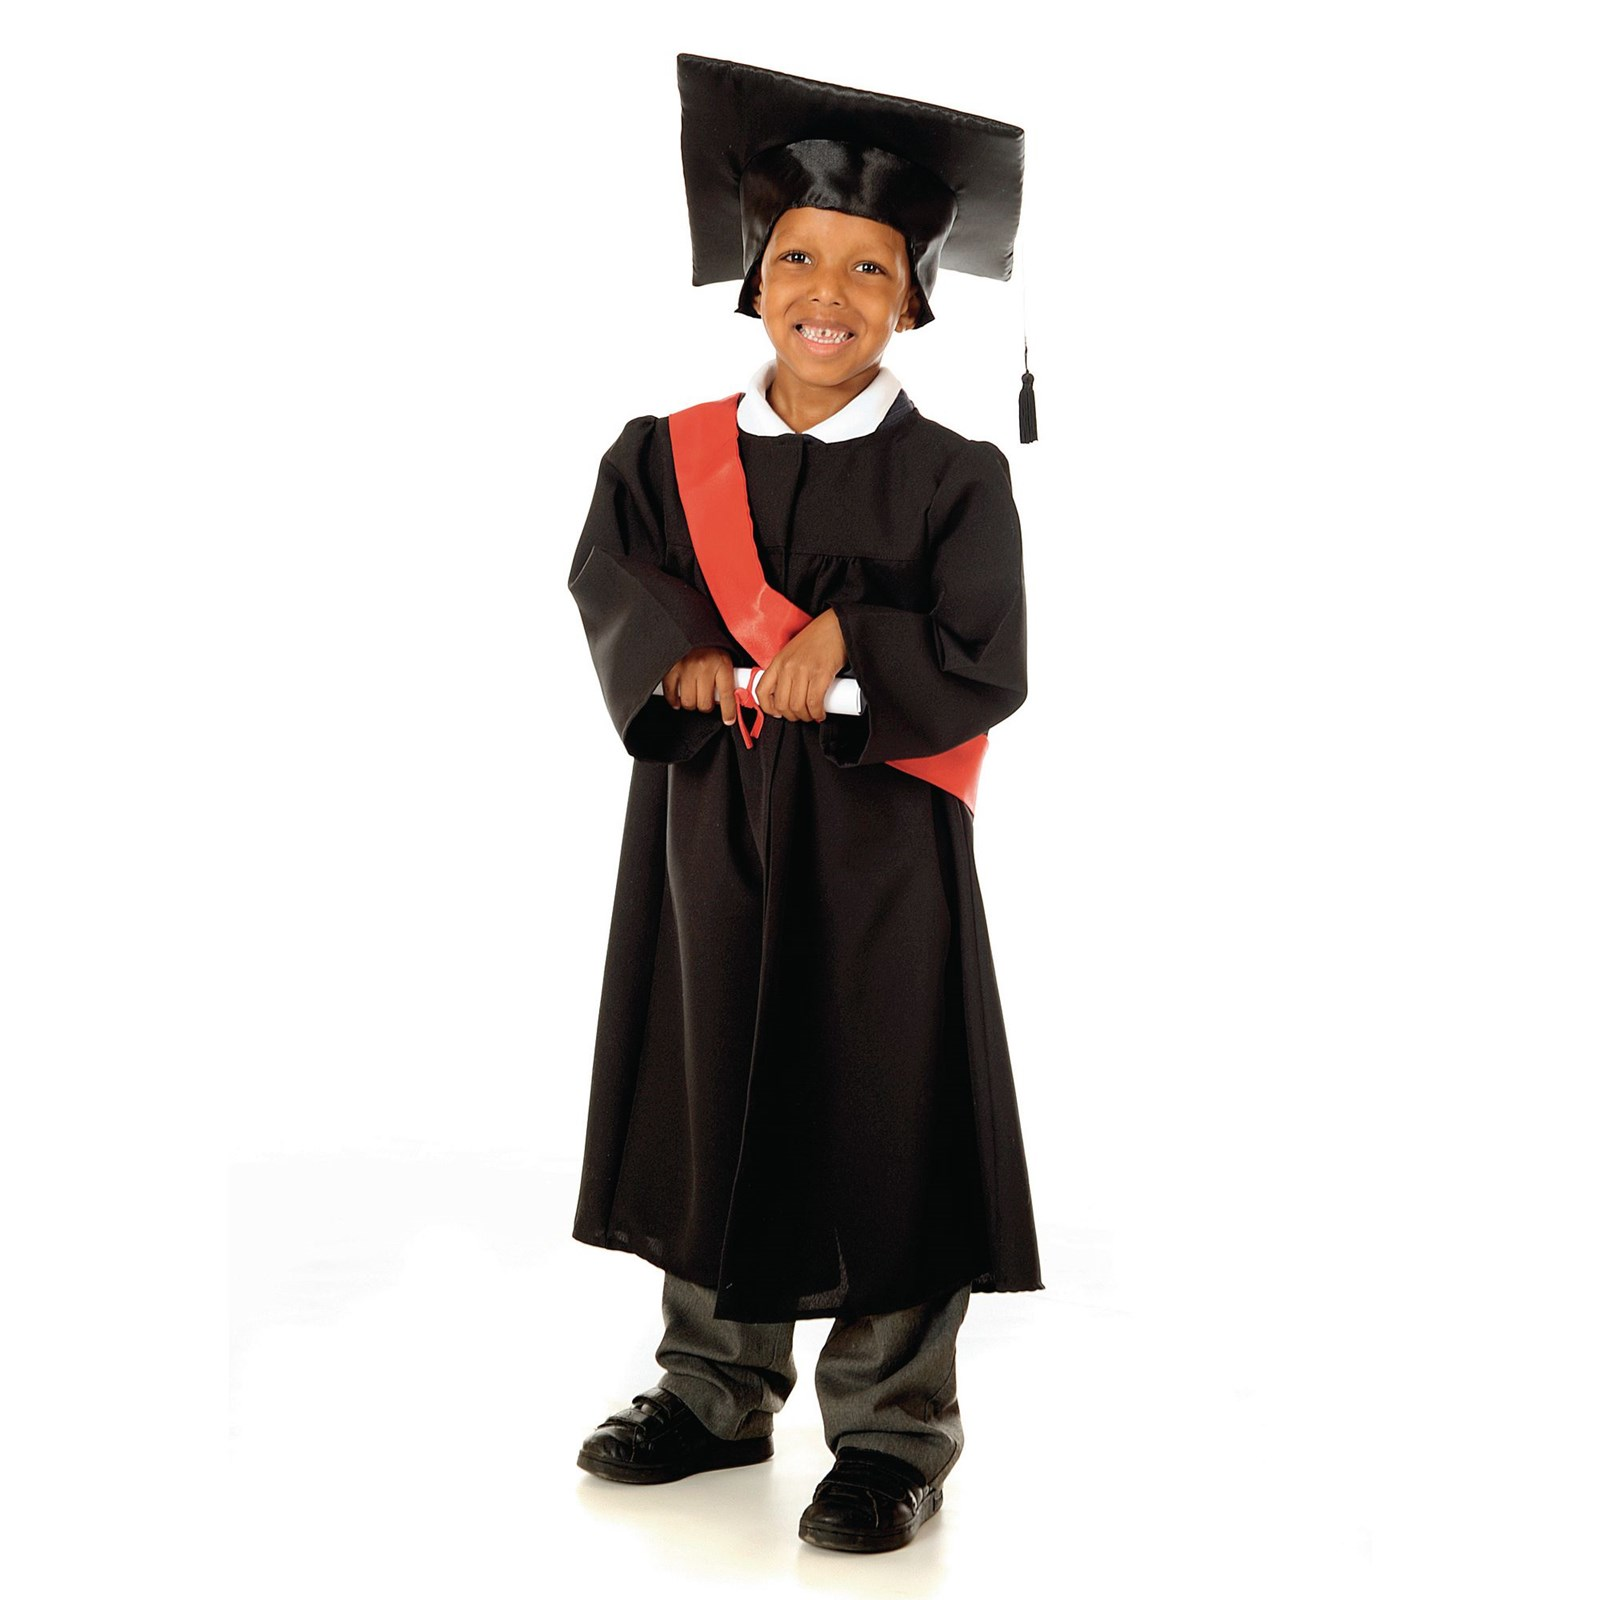 Graduation Gown - Black | Hope Education